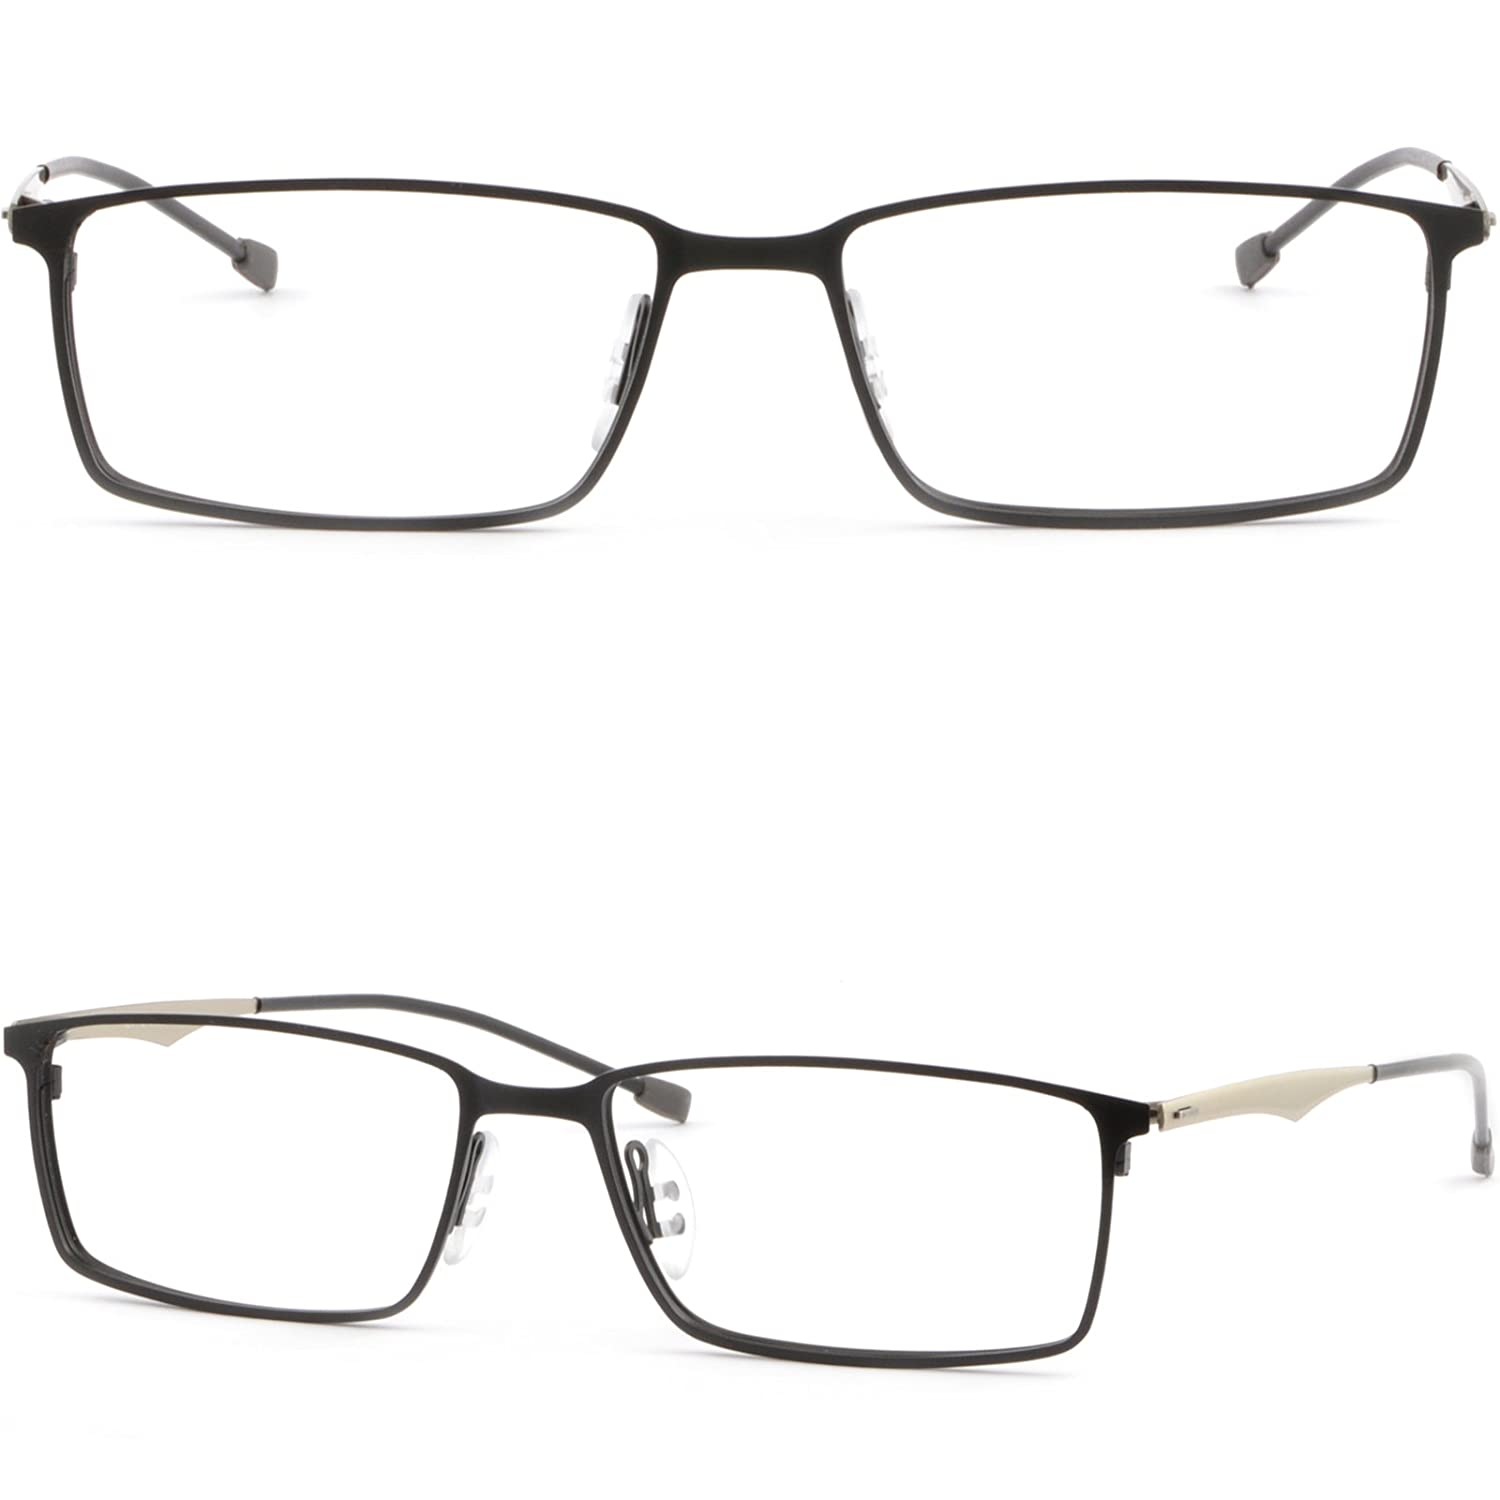 Full Rim Light Pure Titanium Frames Rectangular Prescription Glasses Black